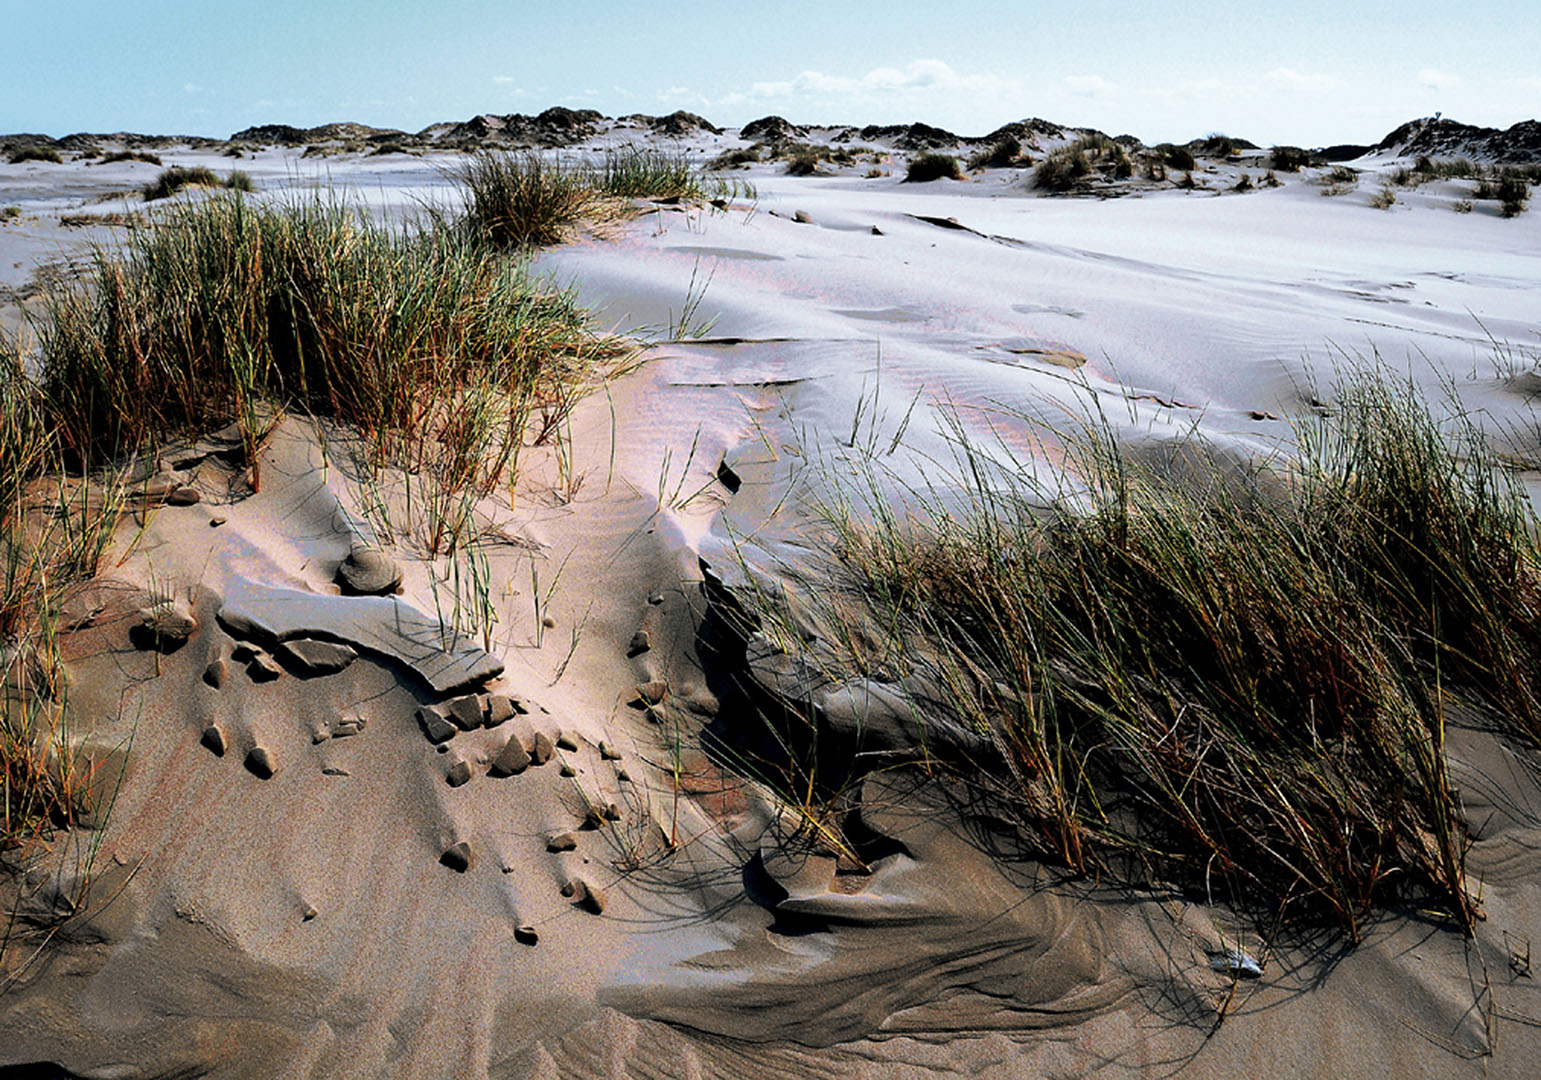 North_Sea_Country_117_N10.48